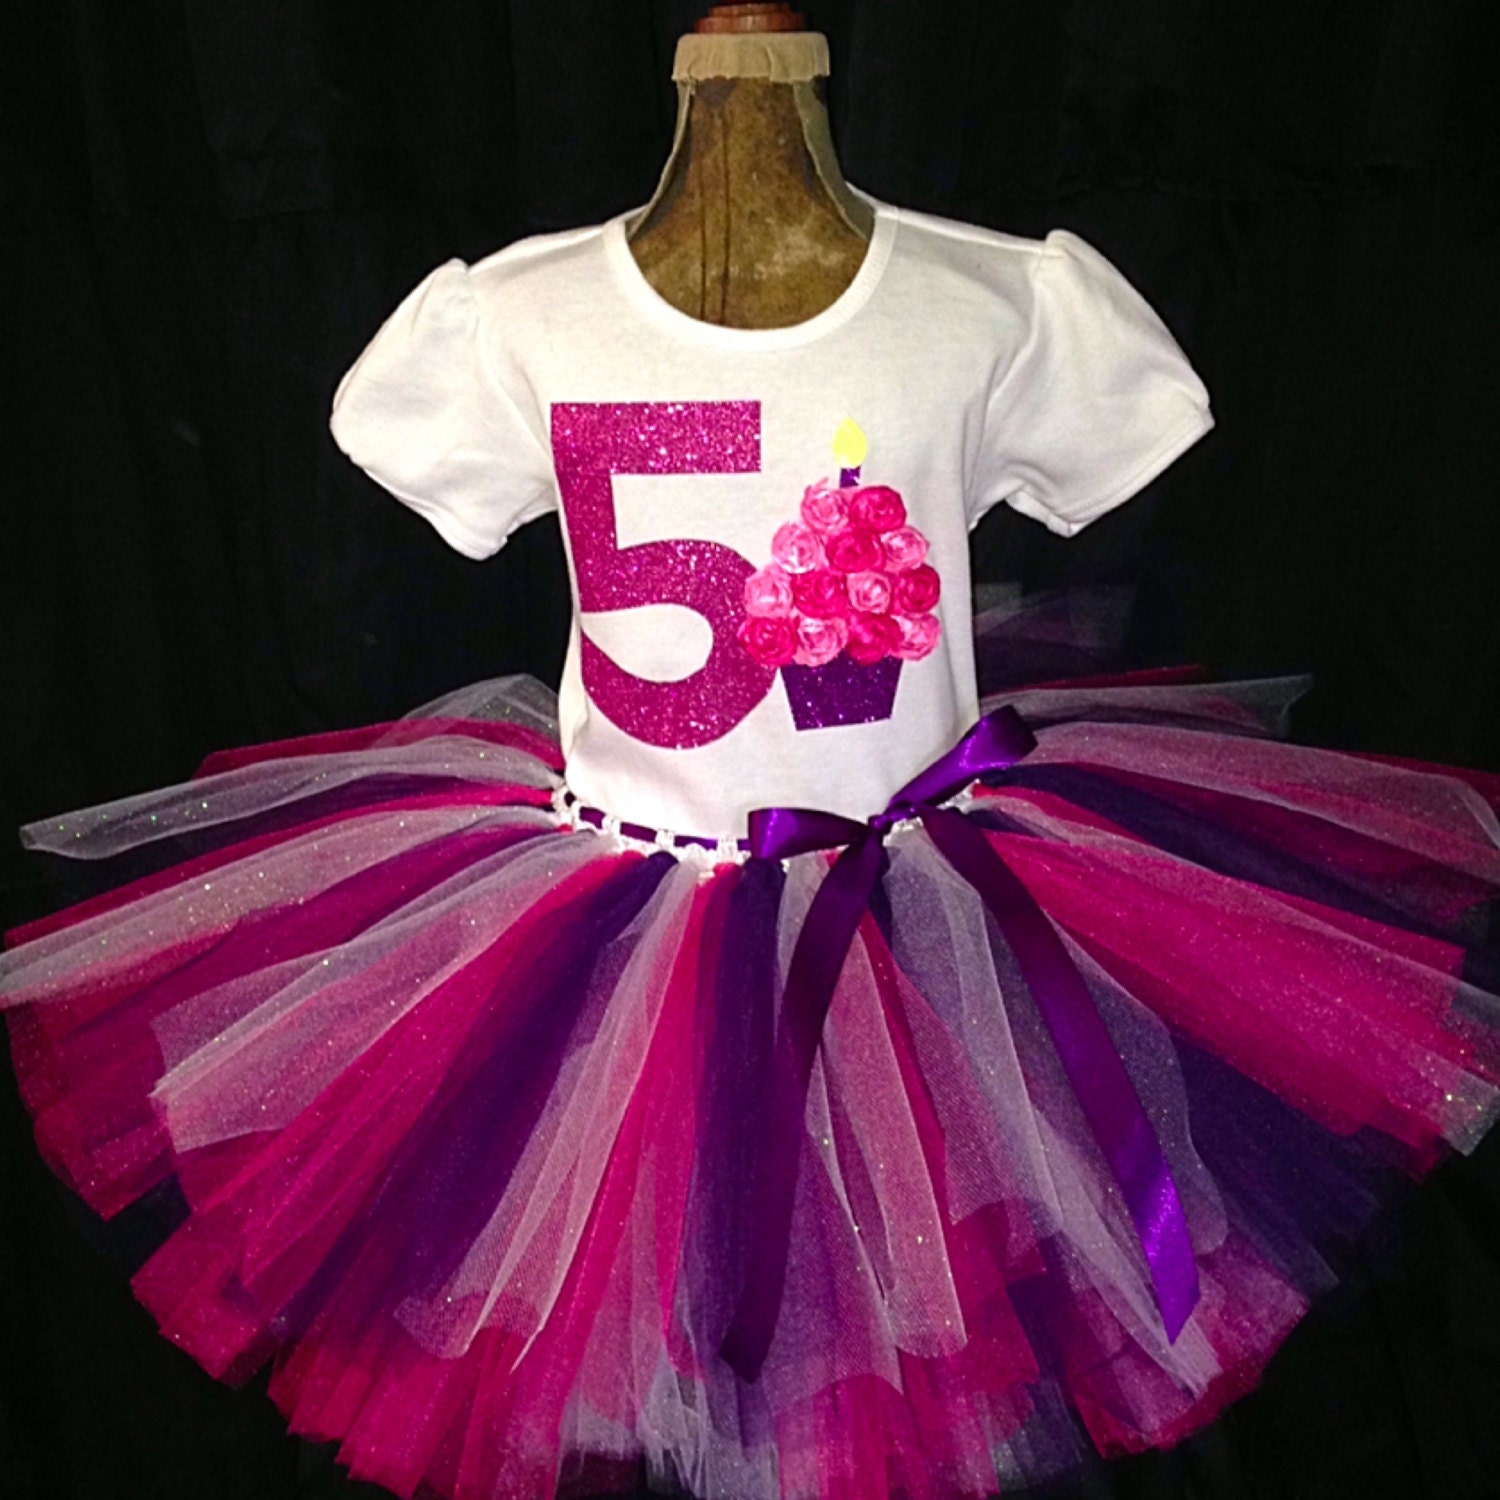 Birthday Party Outfit: Girl's Fifth Birthday Outfit 5th Birthday Shirt 5 Year By